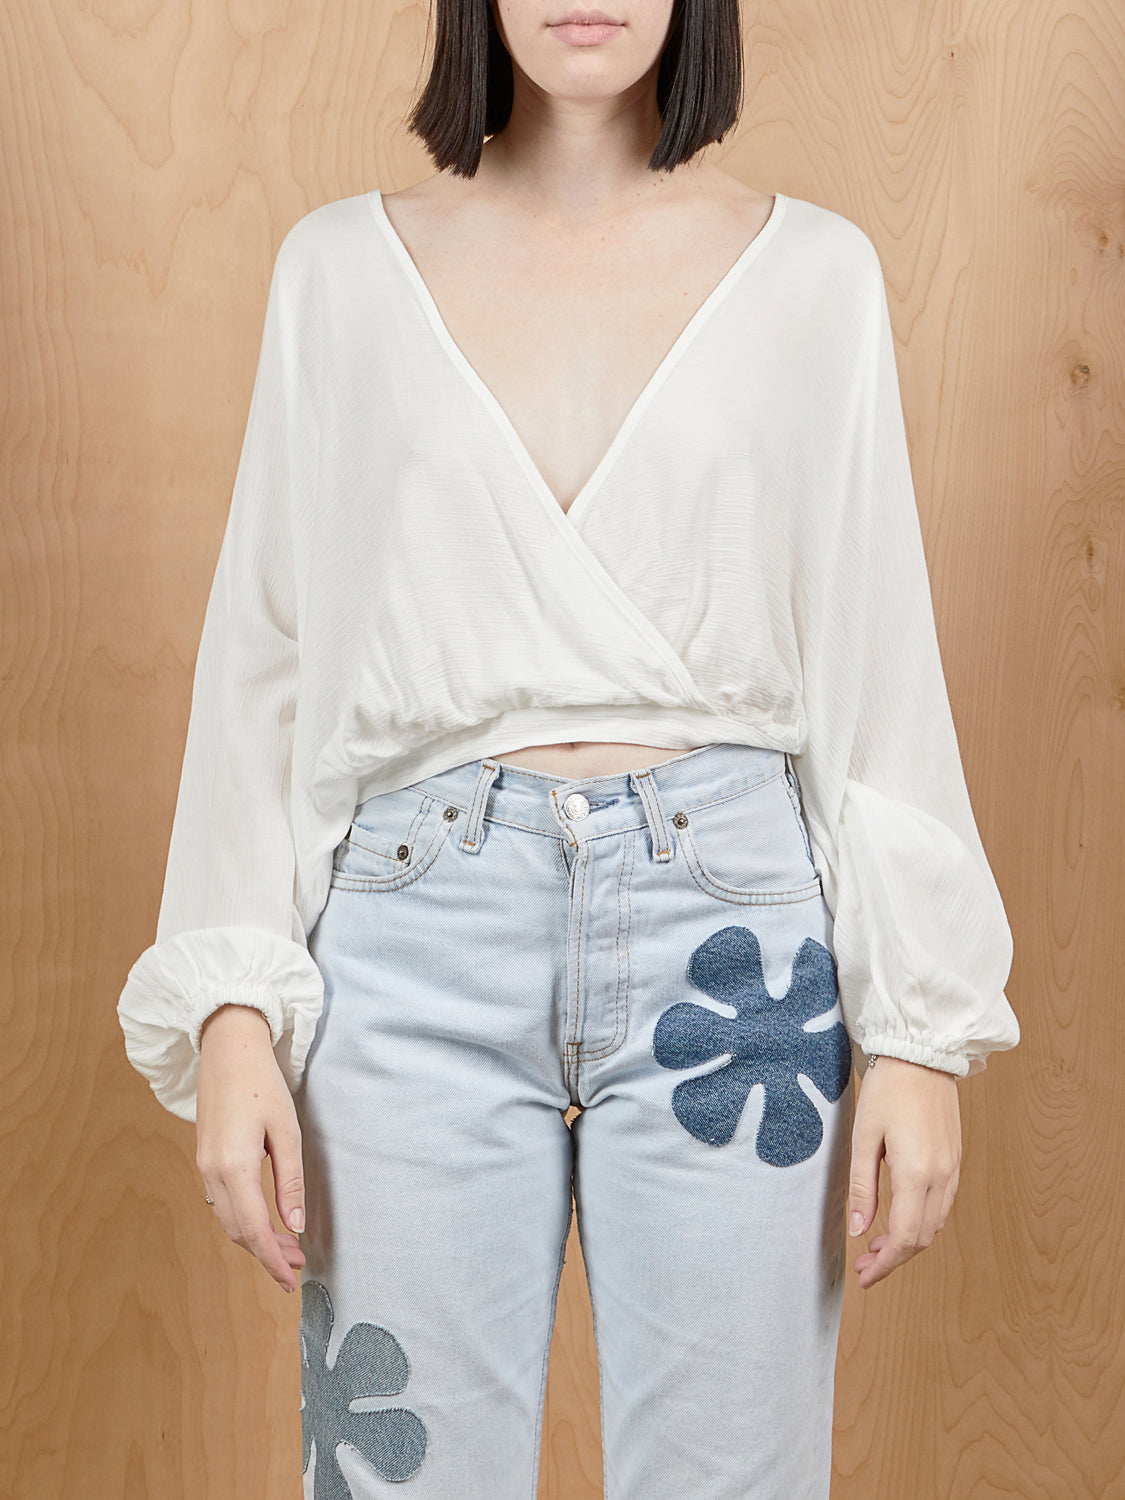 AUDREY 3+1 White Gauze Balloon Sleeve Crop Top